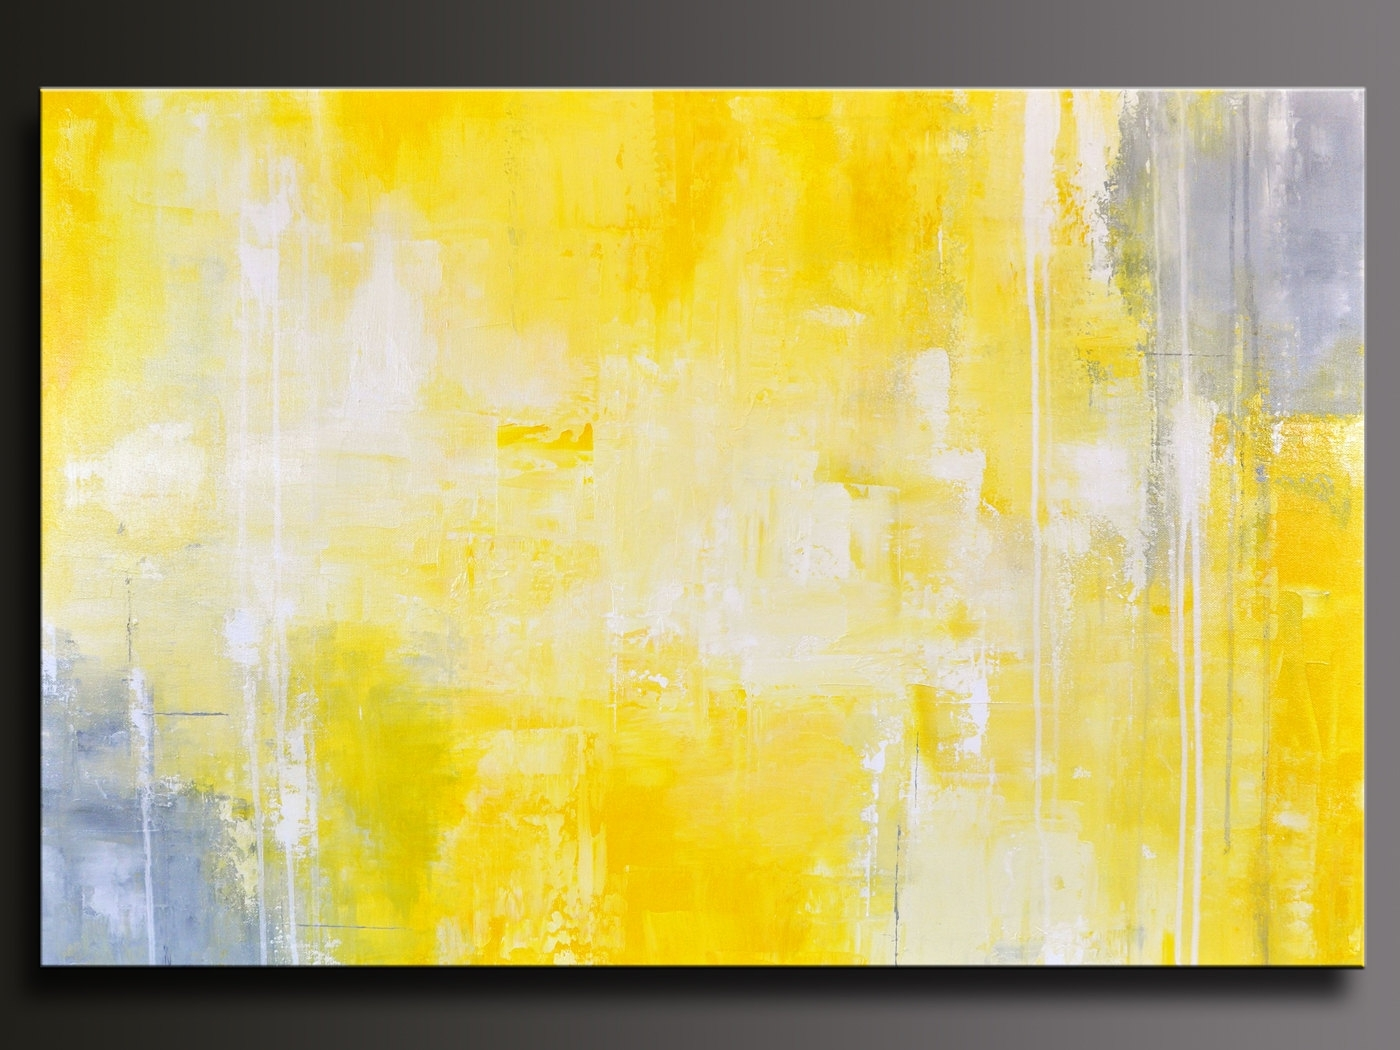 Yellow And Grey Wall Art Pertaining To Current Wall Art Designs: Yellow And Gray Wall Art Diy Wall Art Washington (Gallery 3 of 15)